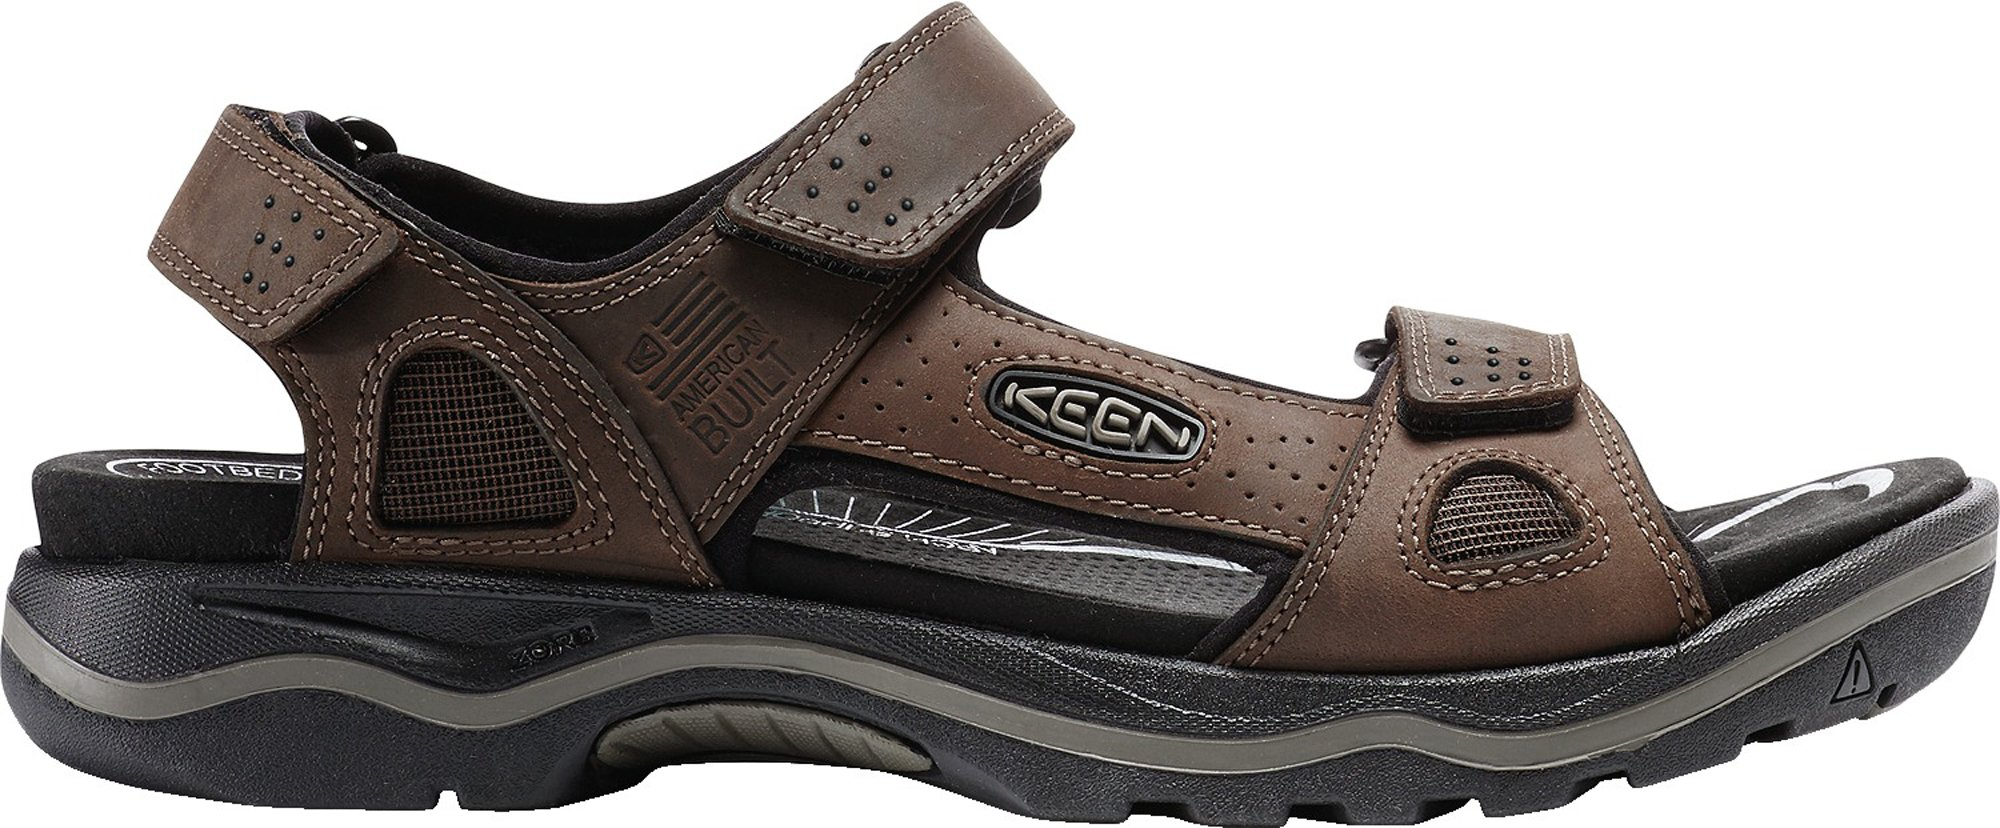 KEEN Men's Rialto 3 Point, Sandal For The Outdoors, 14 M US, Dark Earth/Black by KEEN